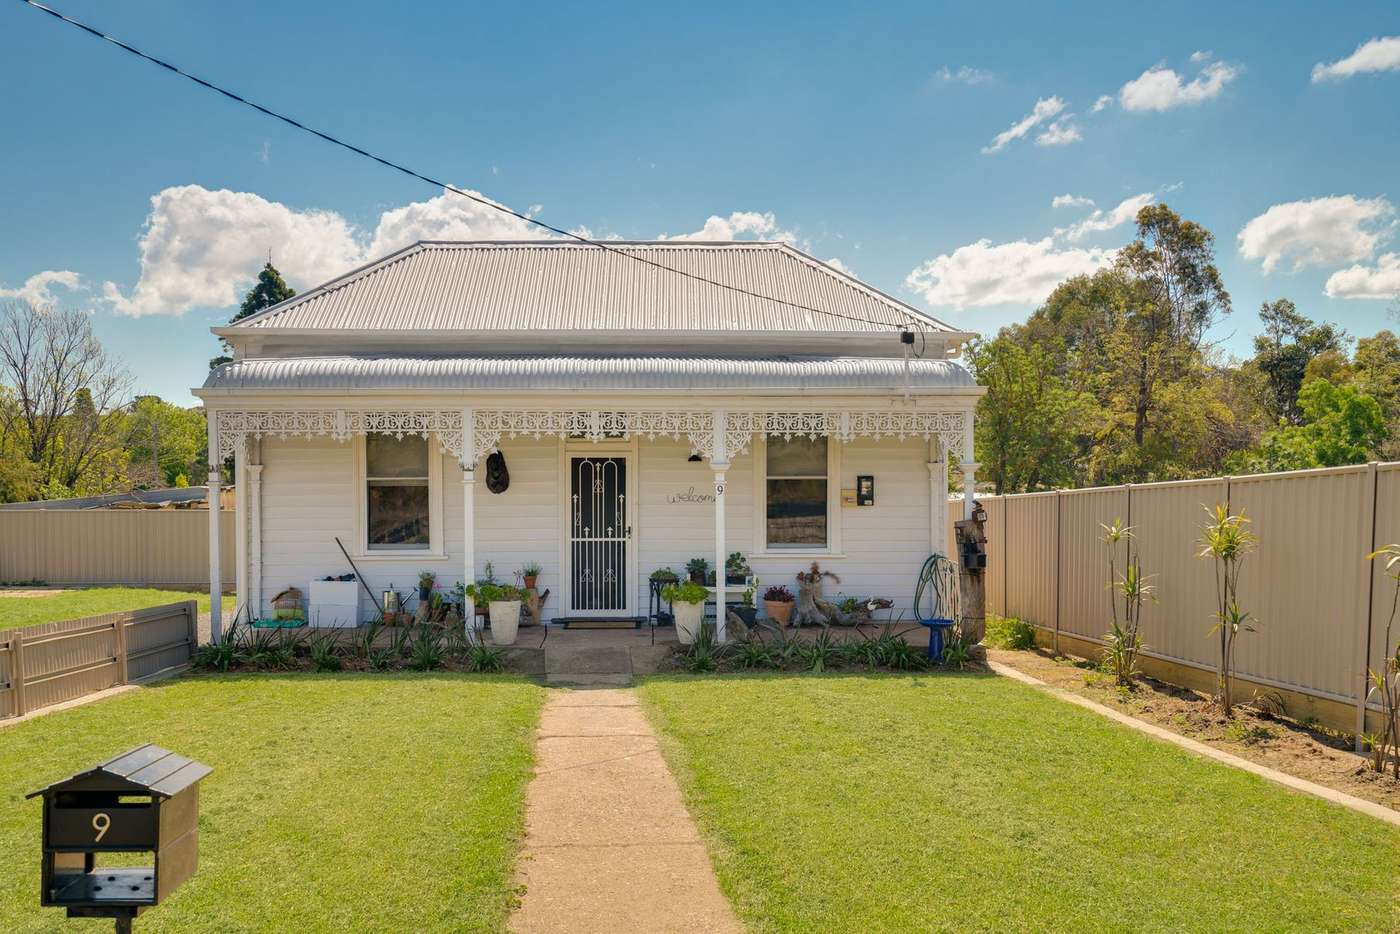 Main view of Homely house listing, 9 Bobs Street, Bendigo VIC 3550